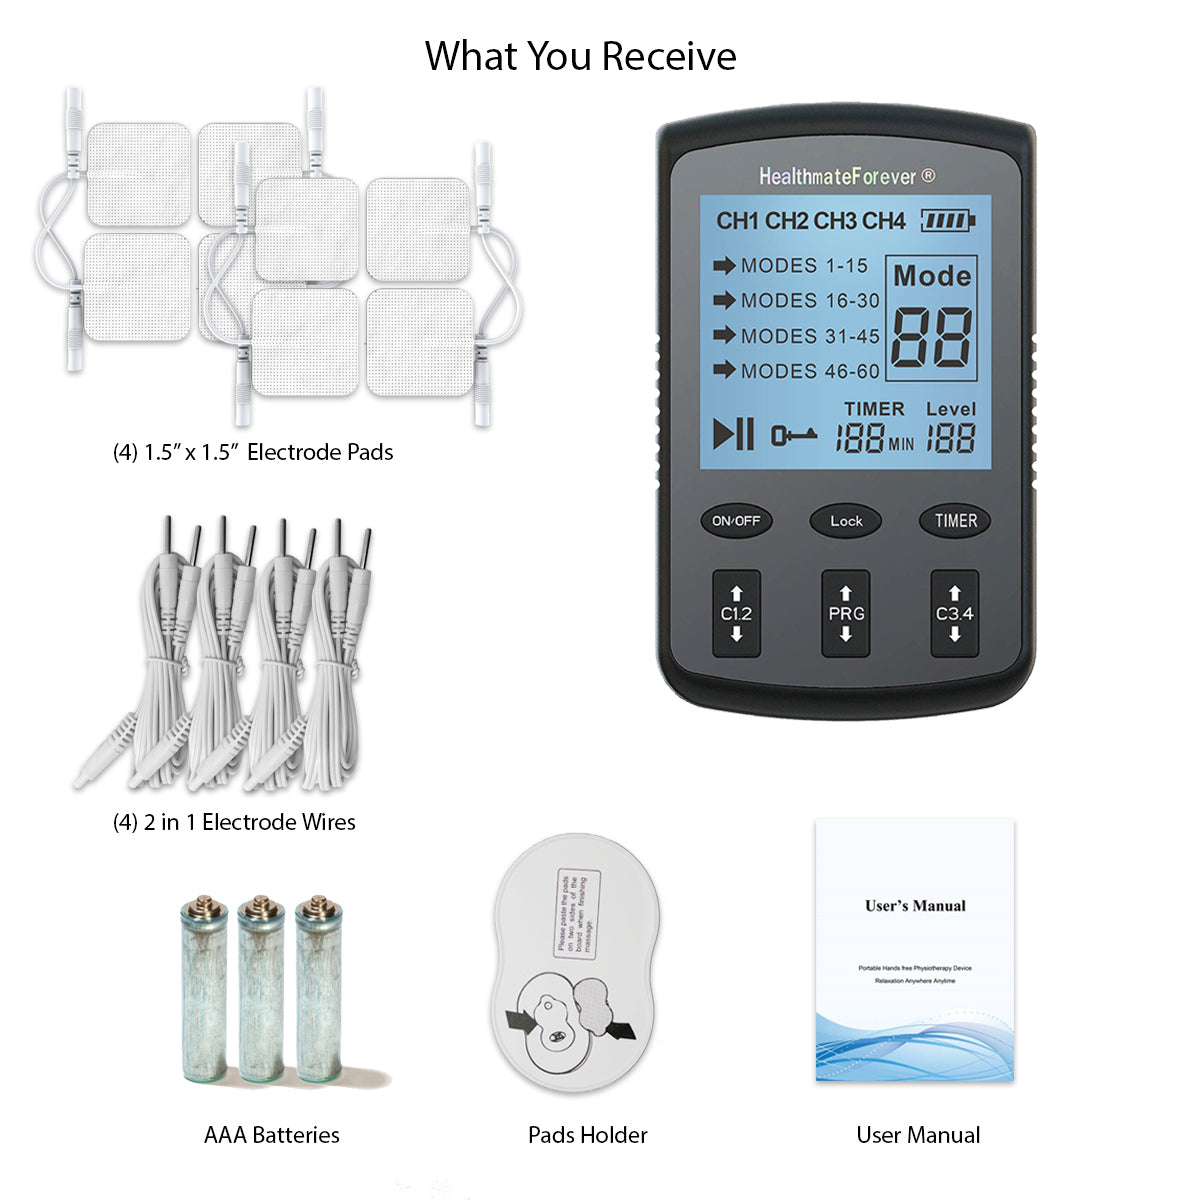 New Arrival - 2020 Version ZT60AB Powerful Electrotherapy Pain Relief TENS UNIT - 2 Year Warranty - HealthmateForever